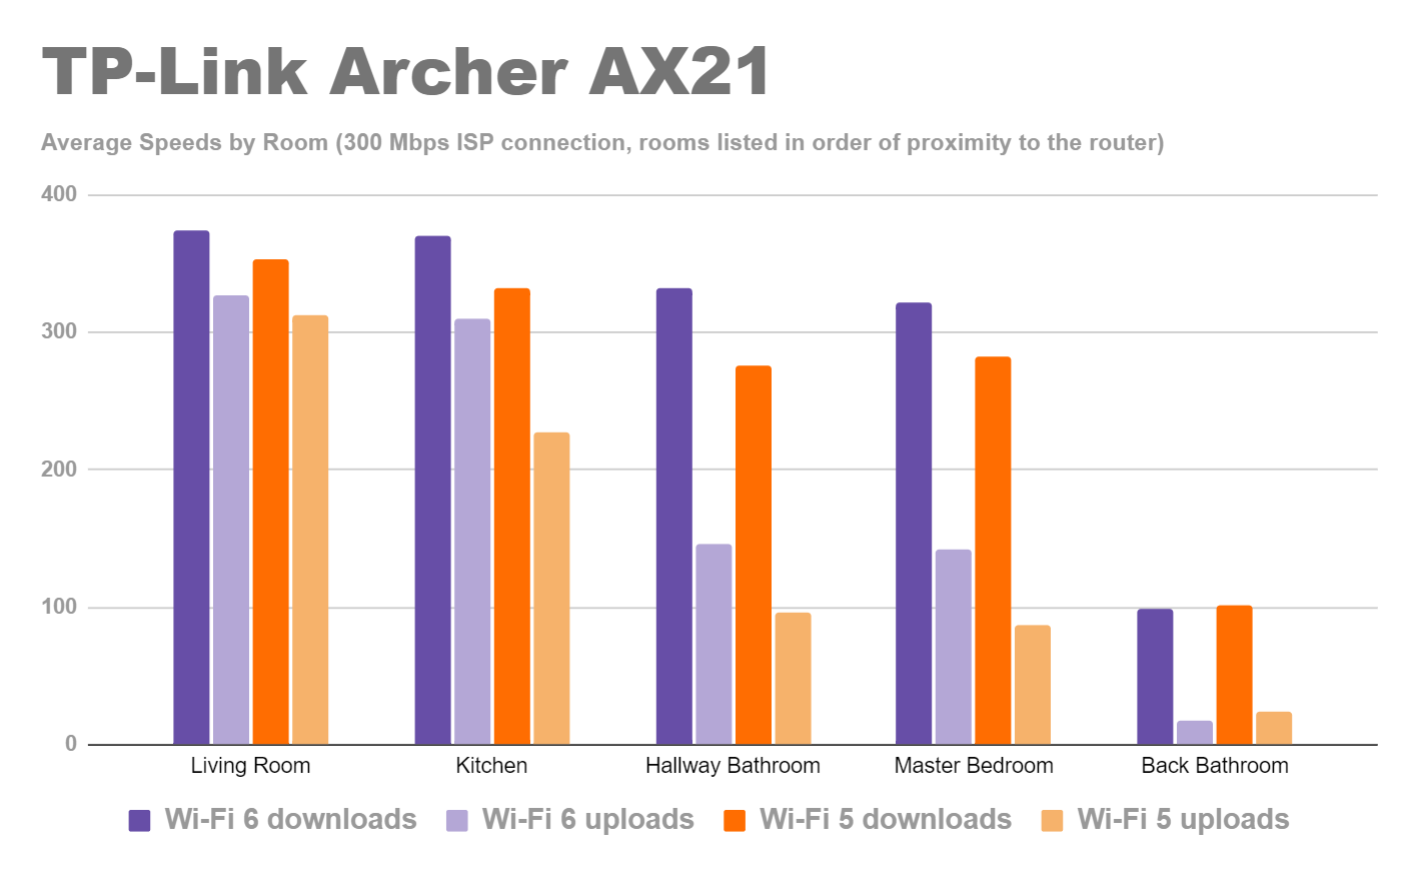 tp-link-archer-ax21-wi-fi-6-and-wi-fi-5-speeds-bar-graph.png